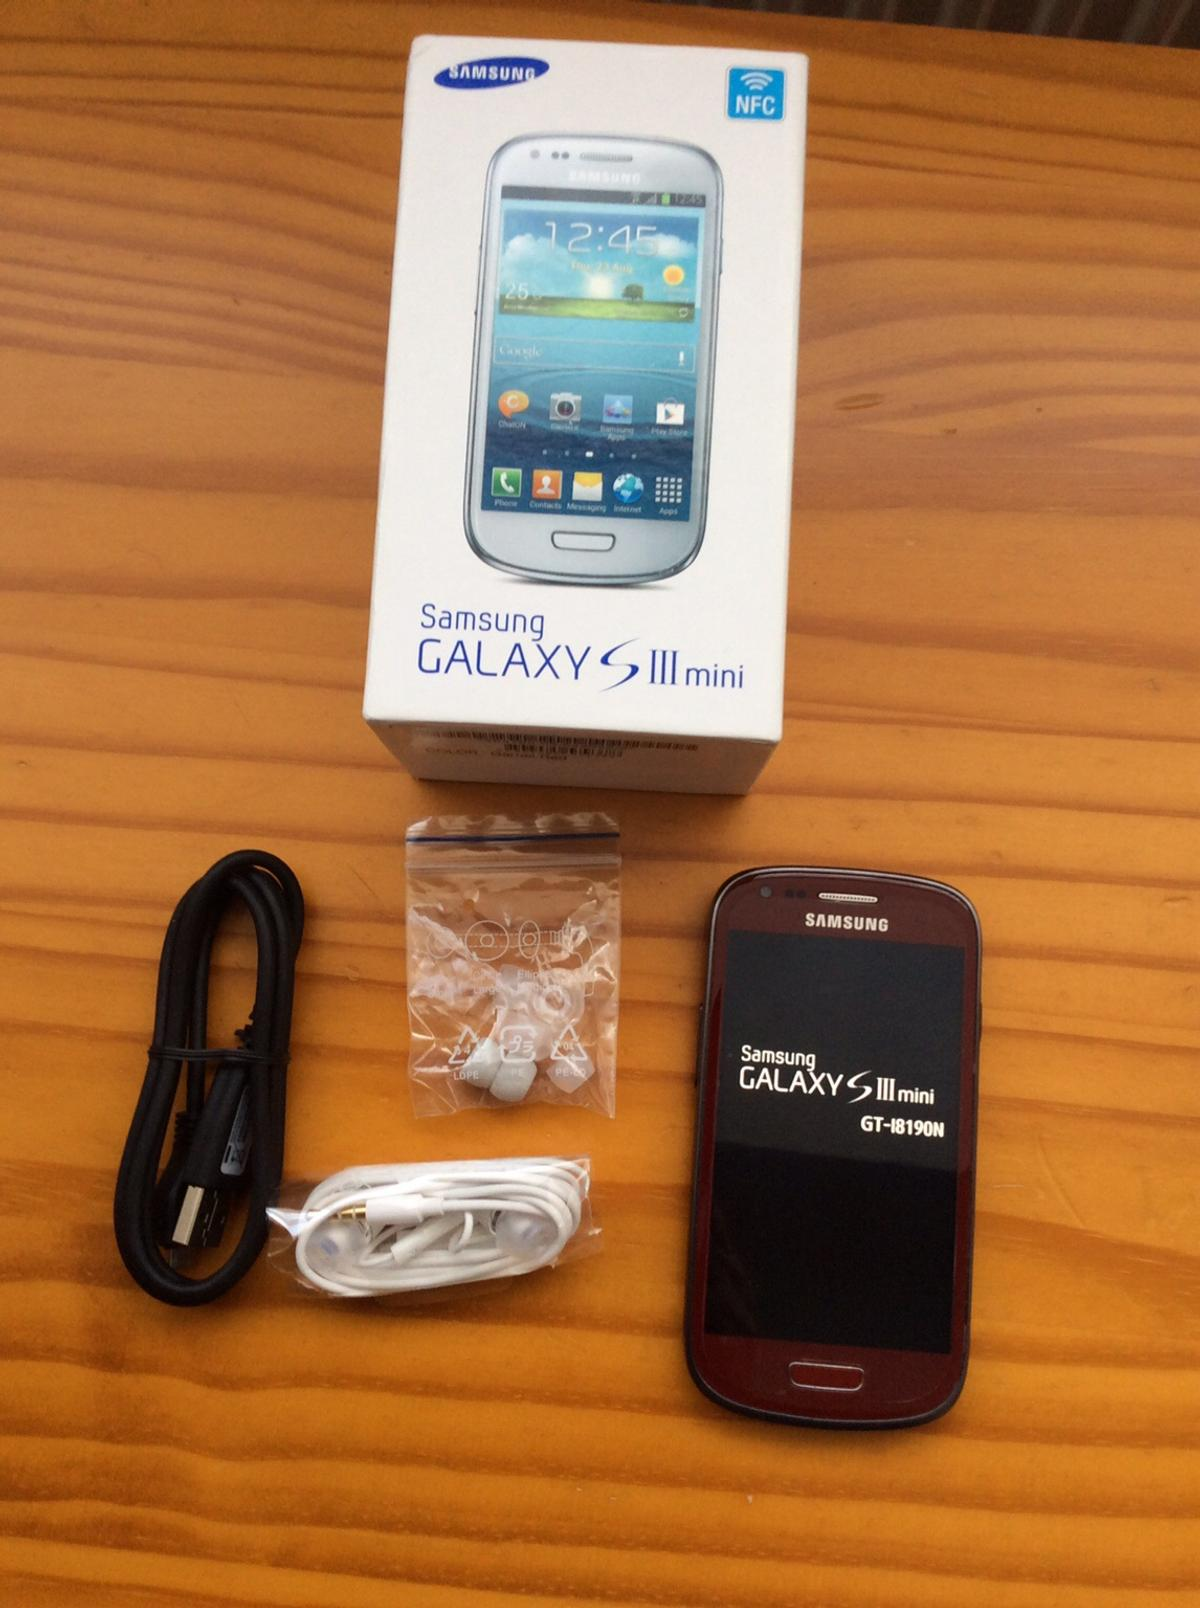 Samsung galaxy s111 mini gt-1819on